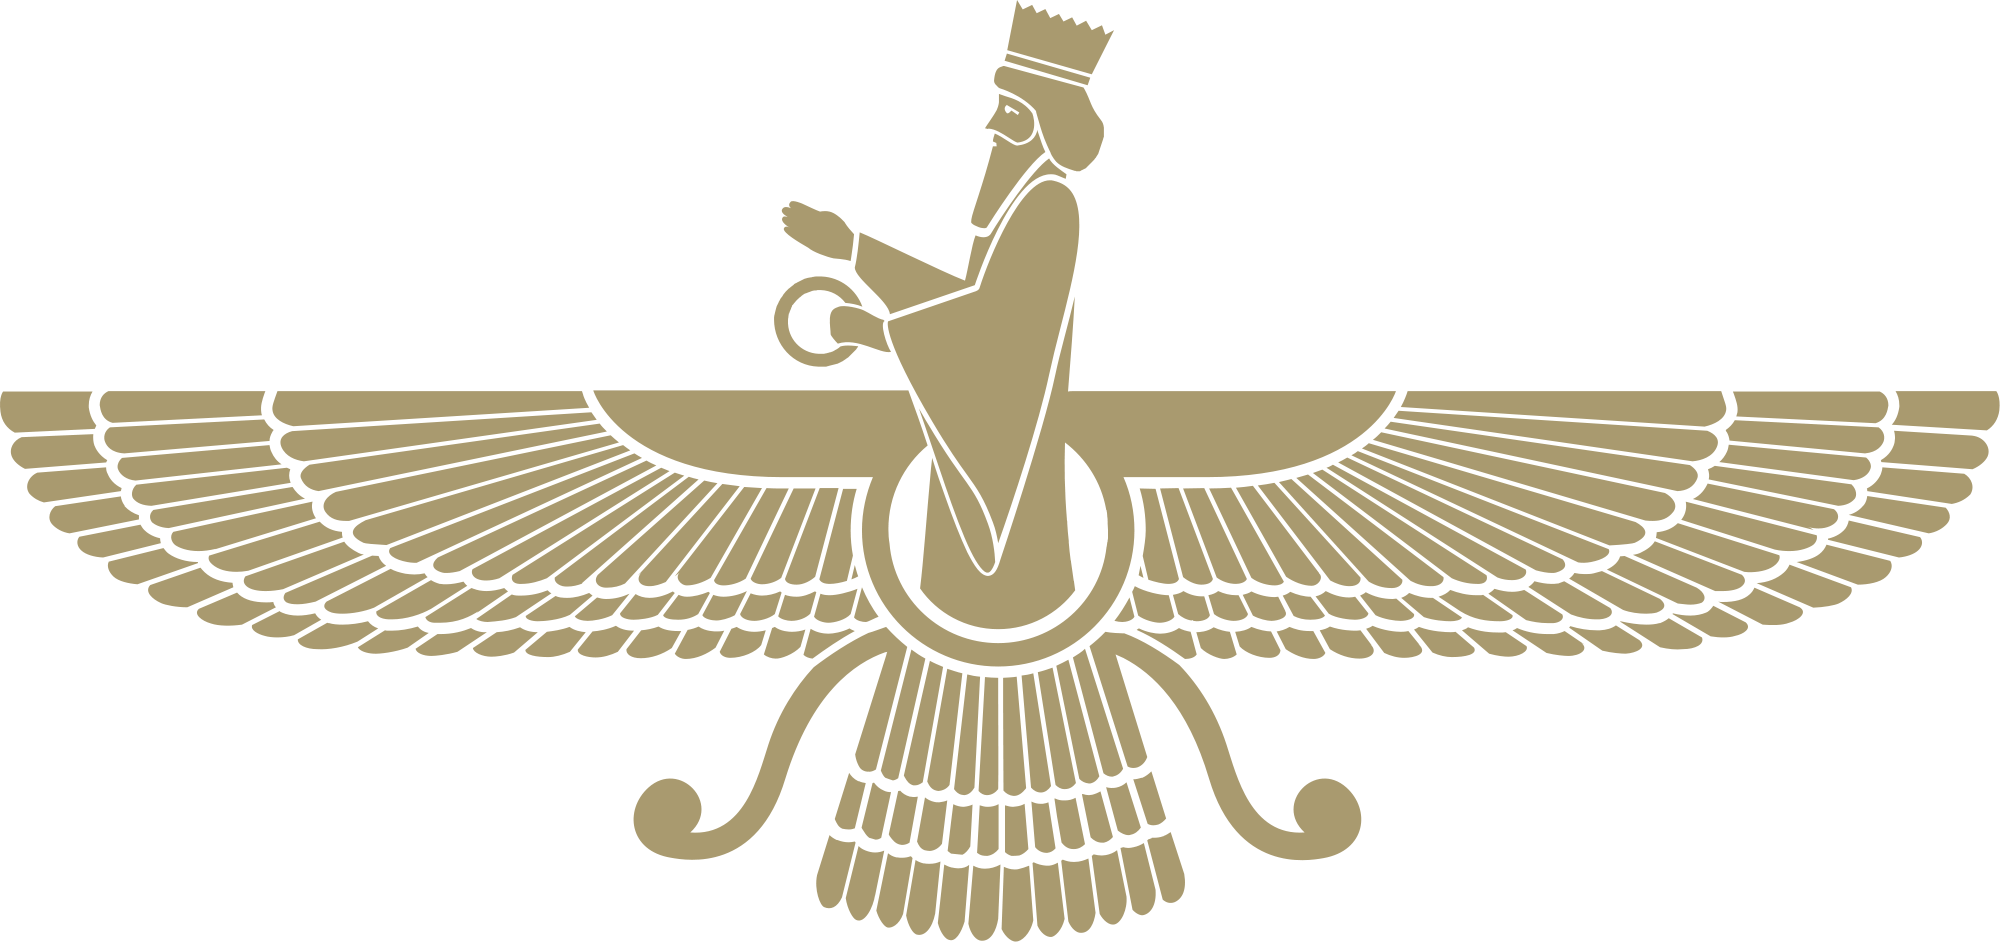 Greek clipart persian empire. Zoroastrianism is one of